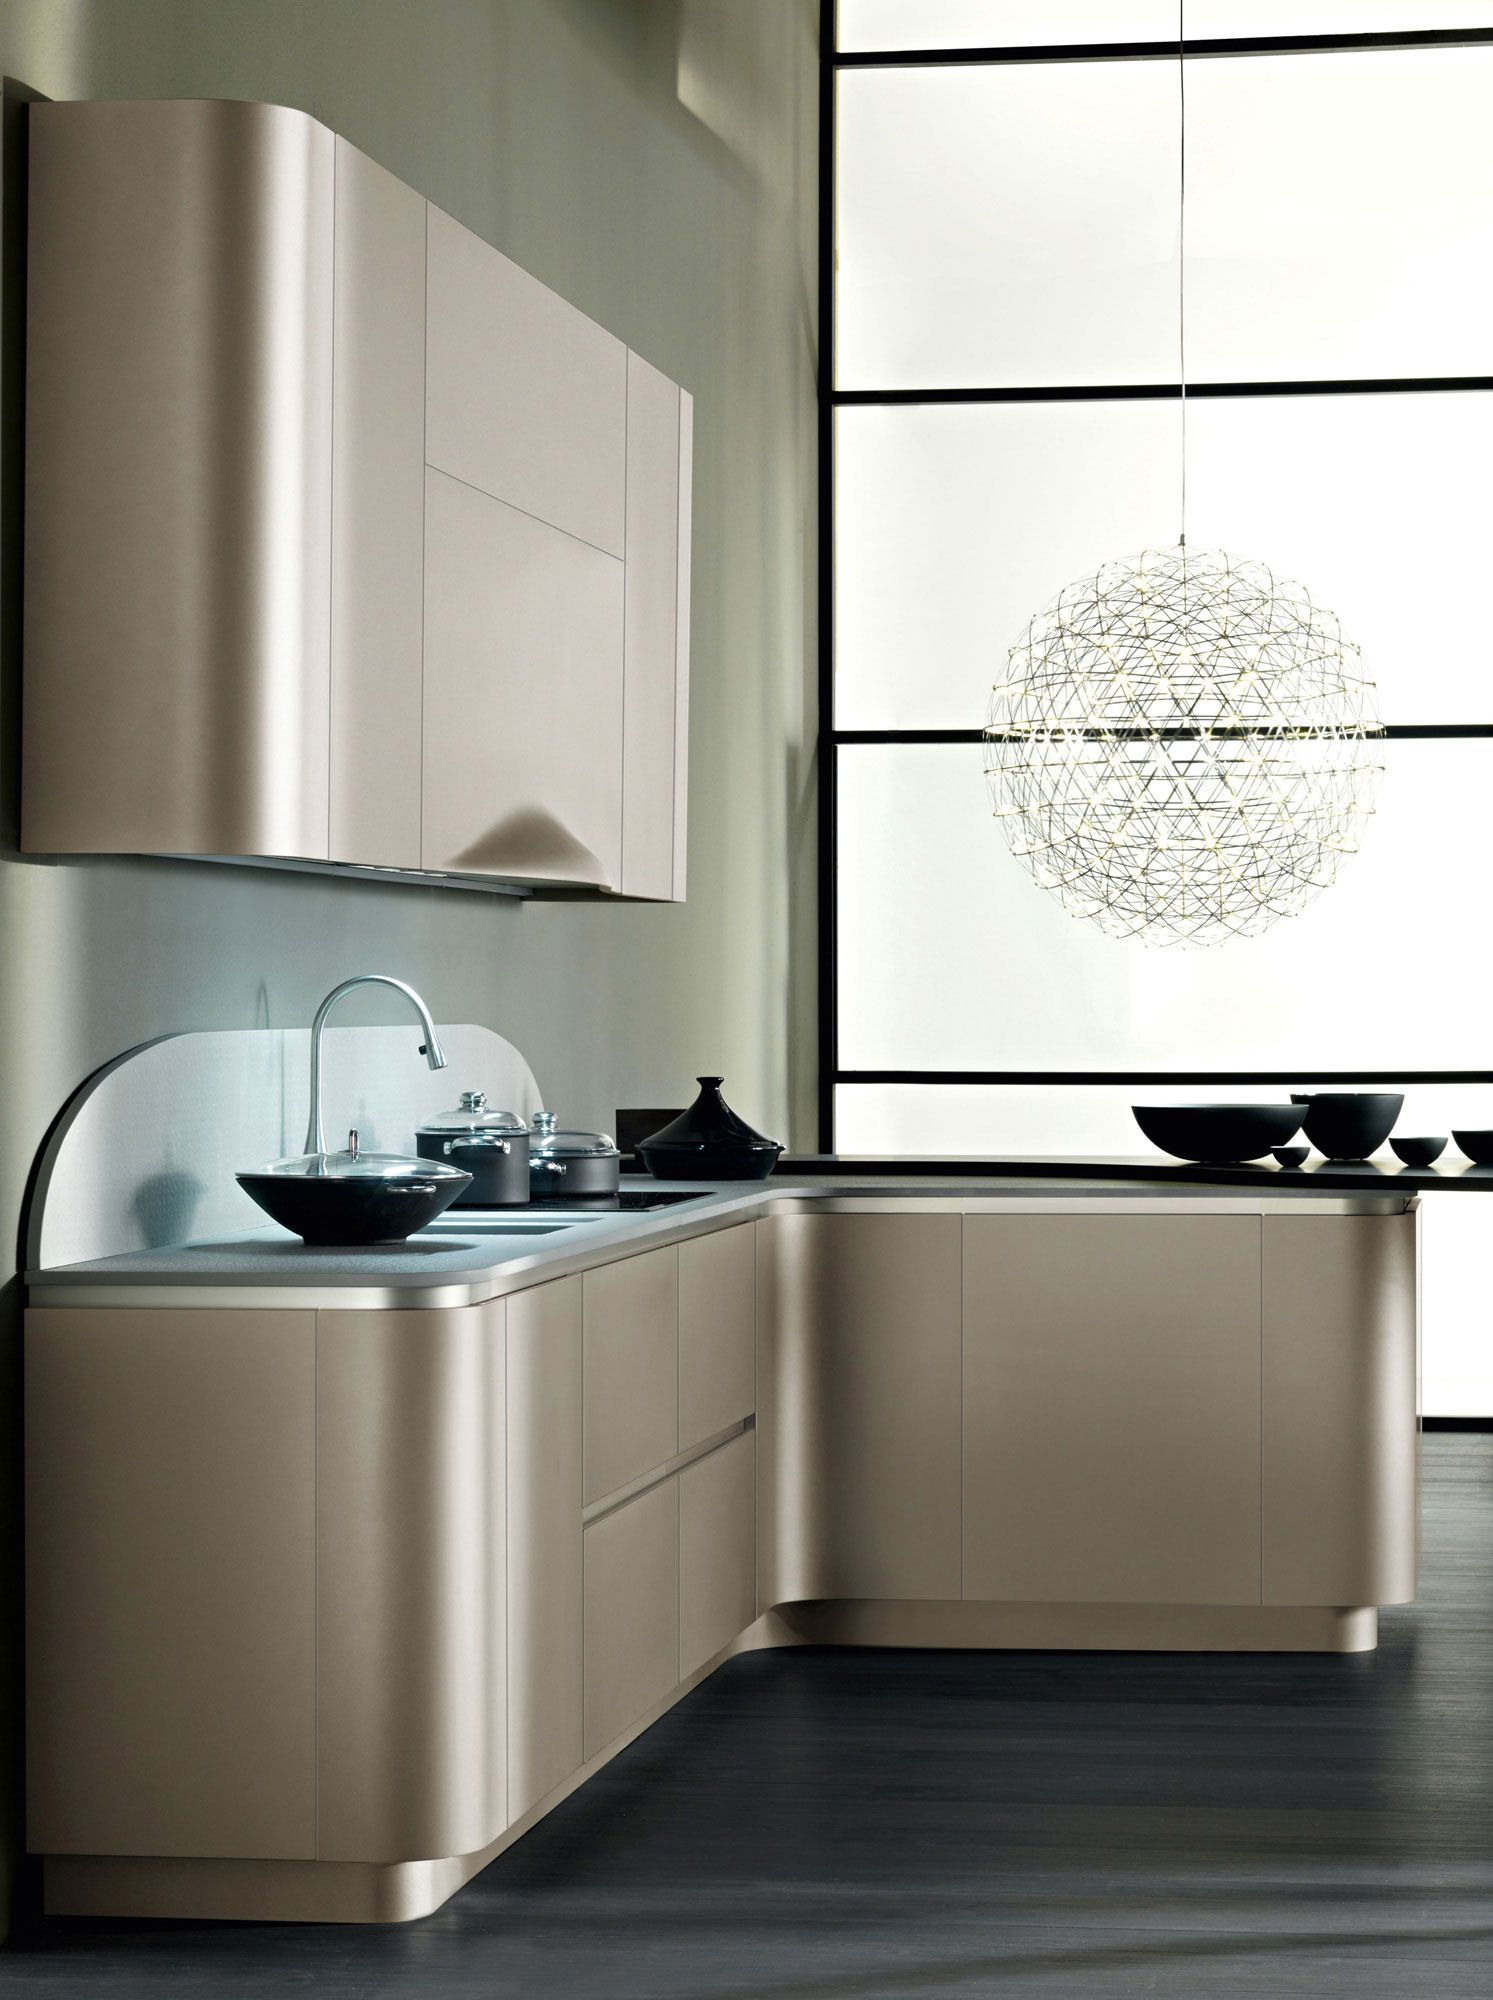 Ola 20 | Snaidero | 厨房(The kitchen) | Pinterest | Kitchen ...